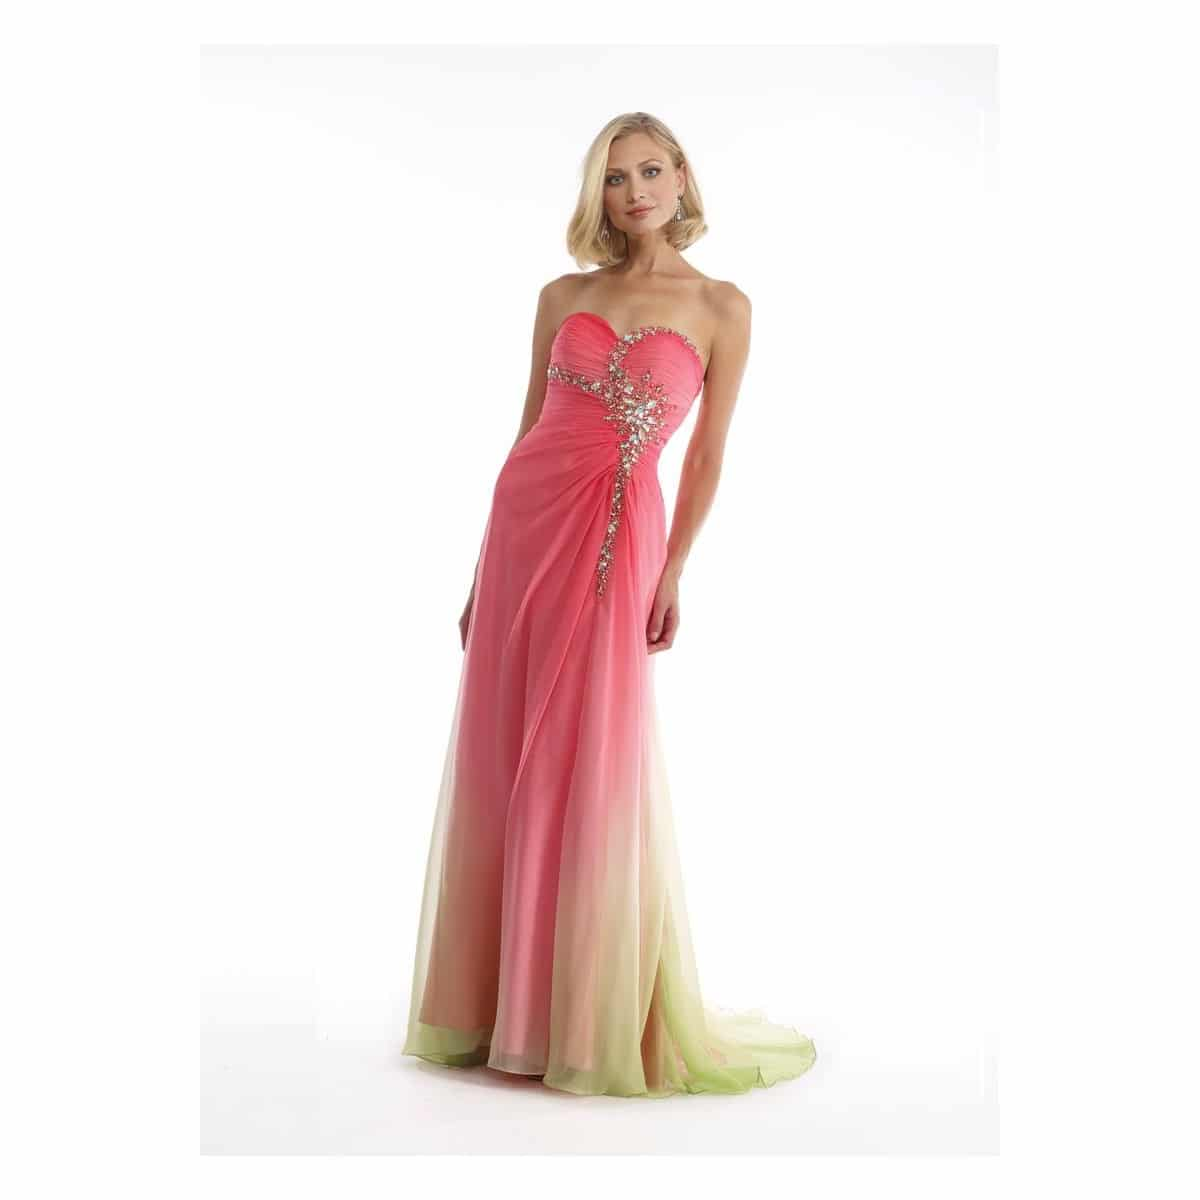 morrell-maxie-coral-and-lime-ombre-chiffon-dress